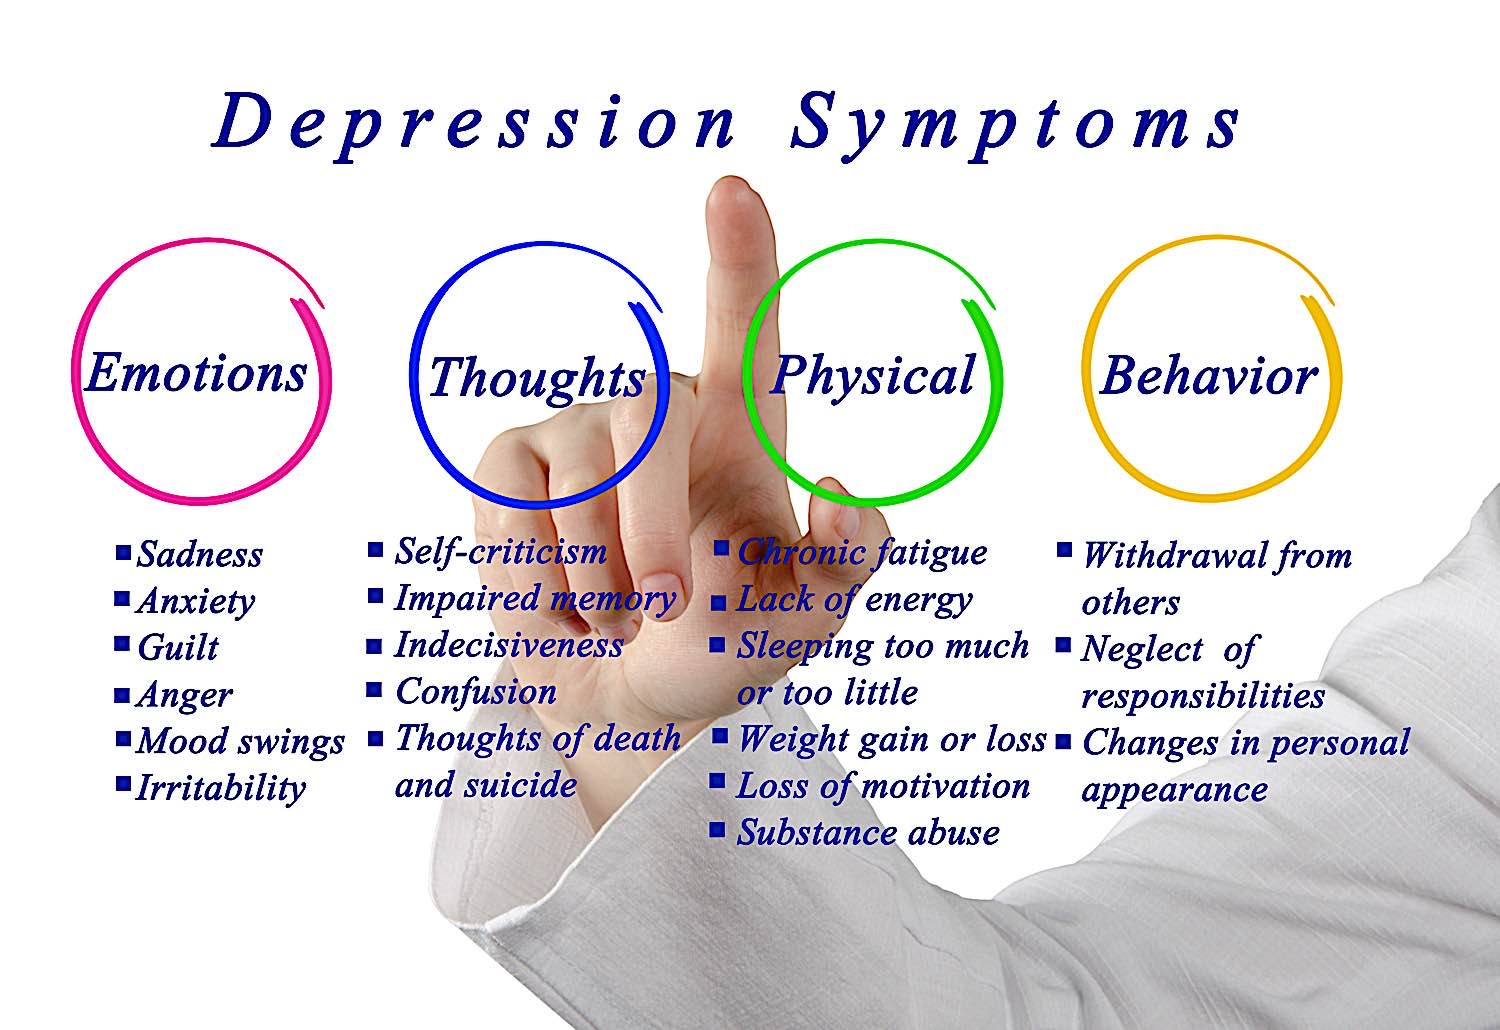 The symptoms of depression can manifest in thoughts, physical reactions, emotions or behaviors.